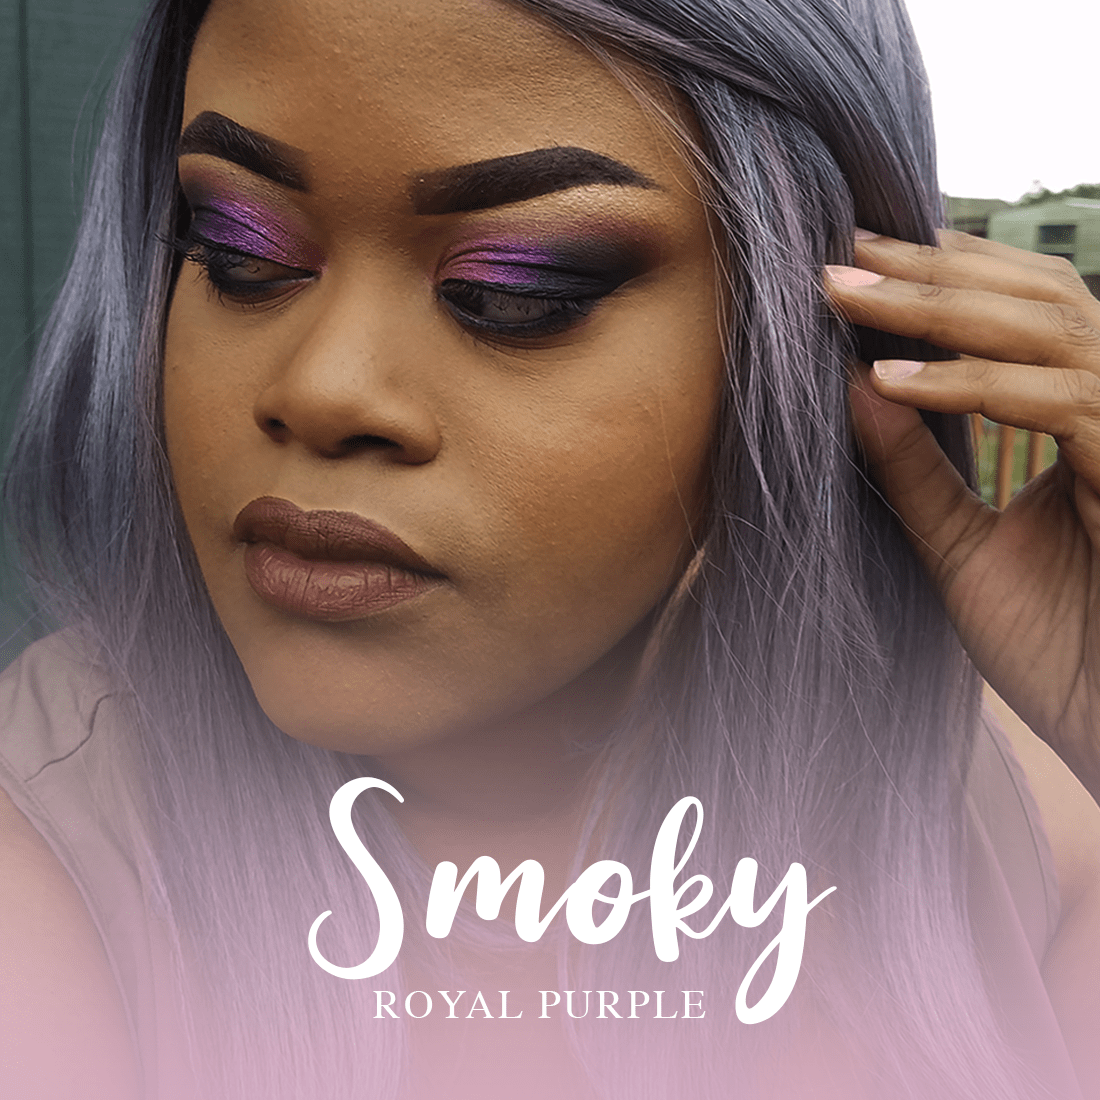 Smoky Royal Purple Look